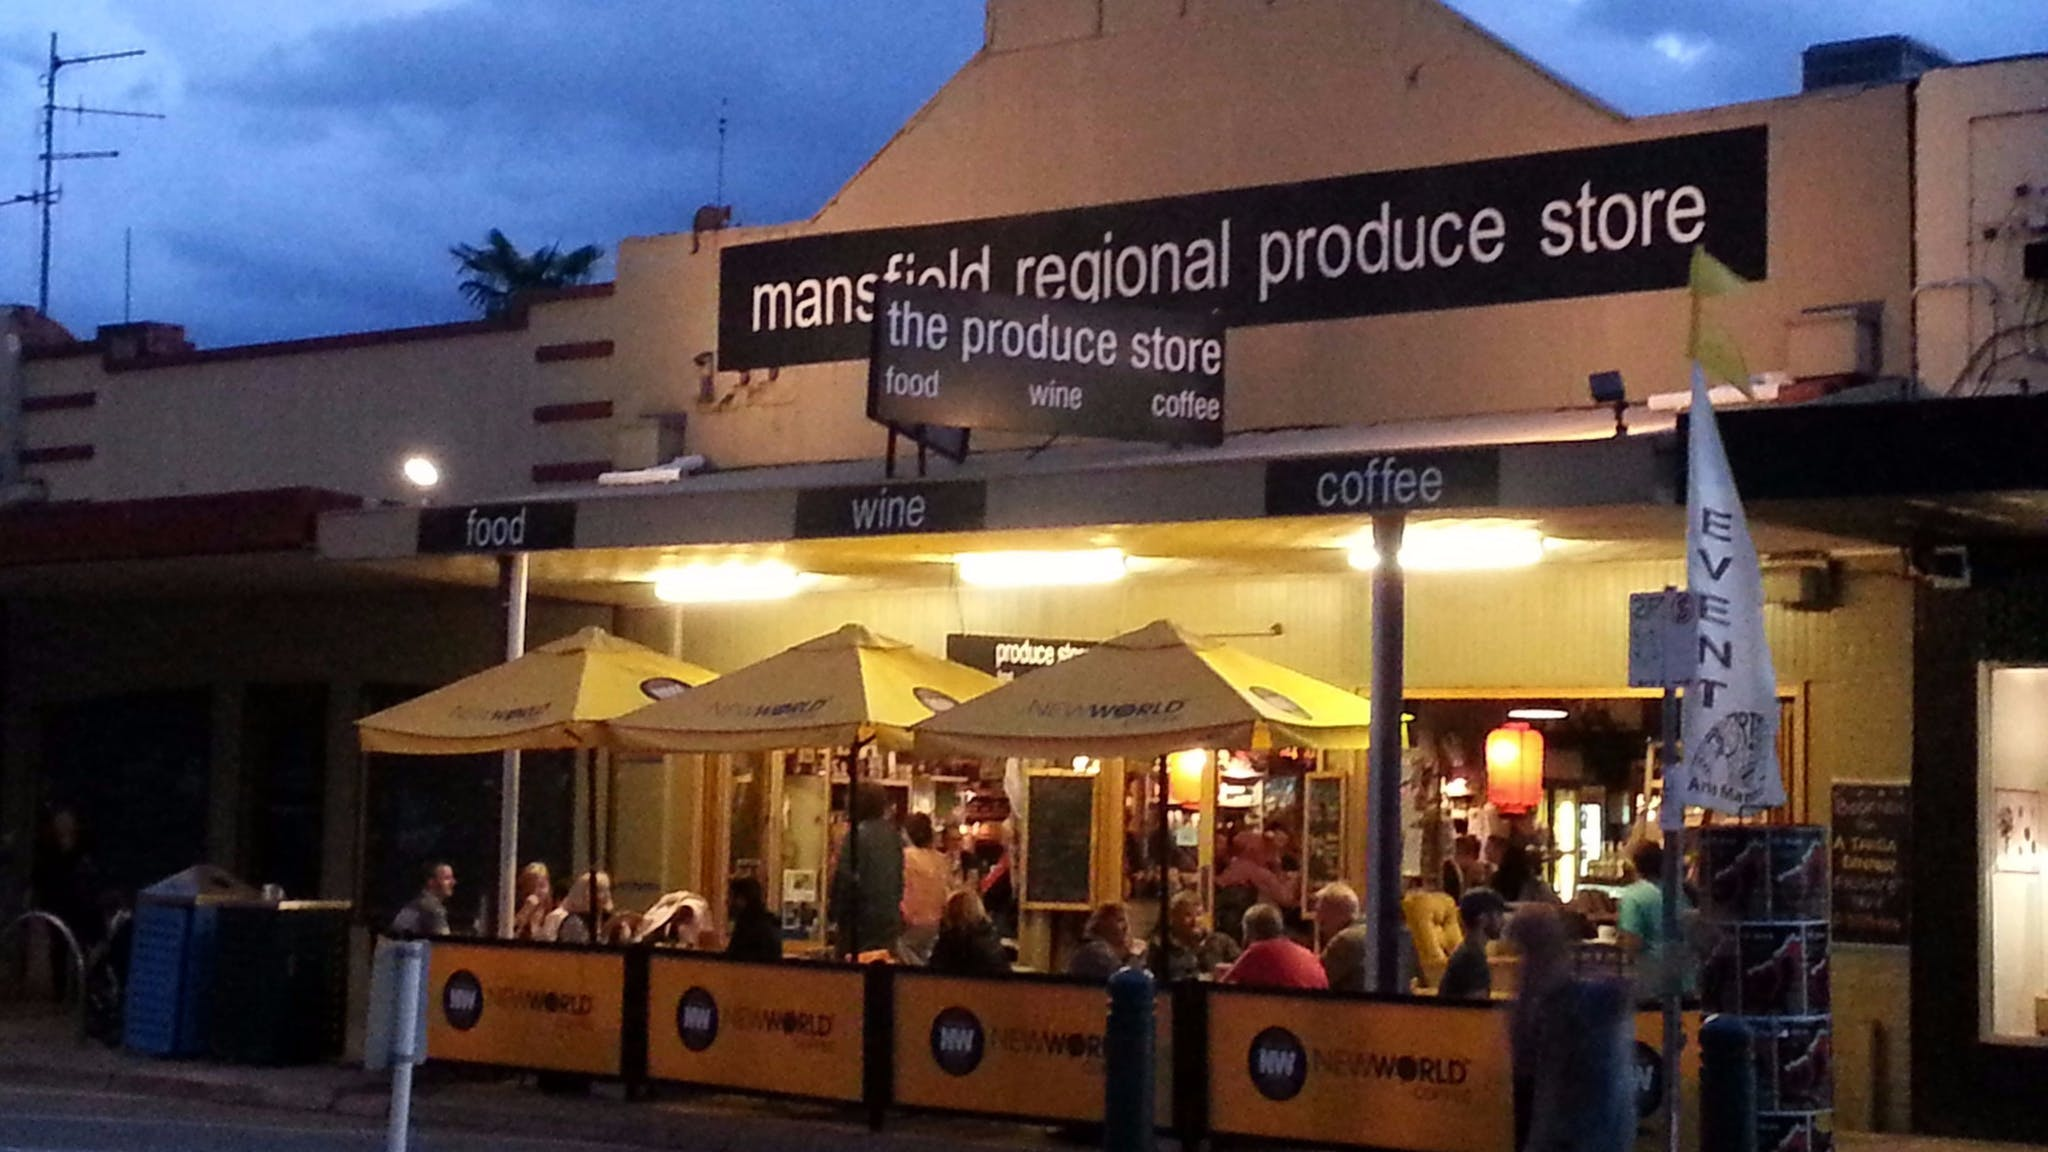 The Produce Store at night